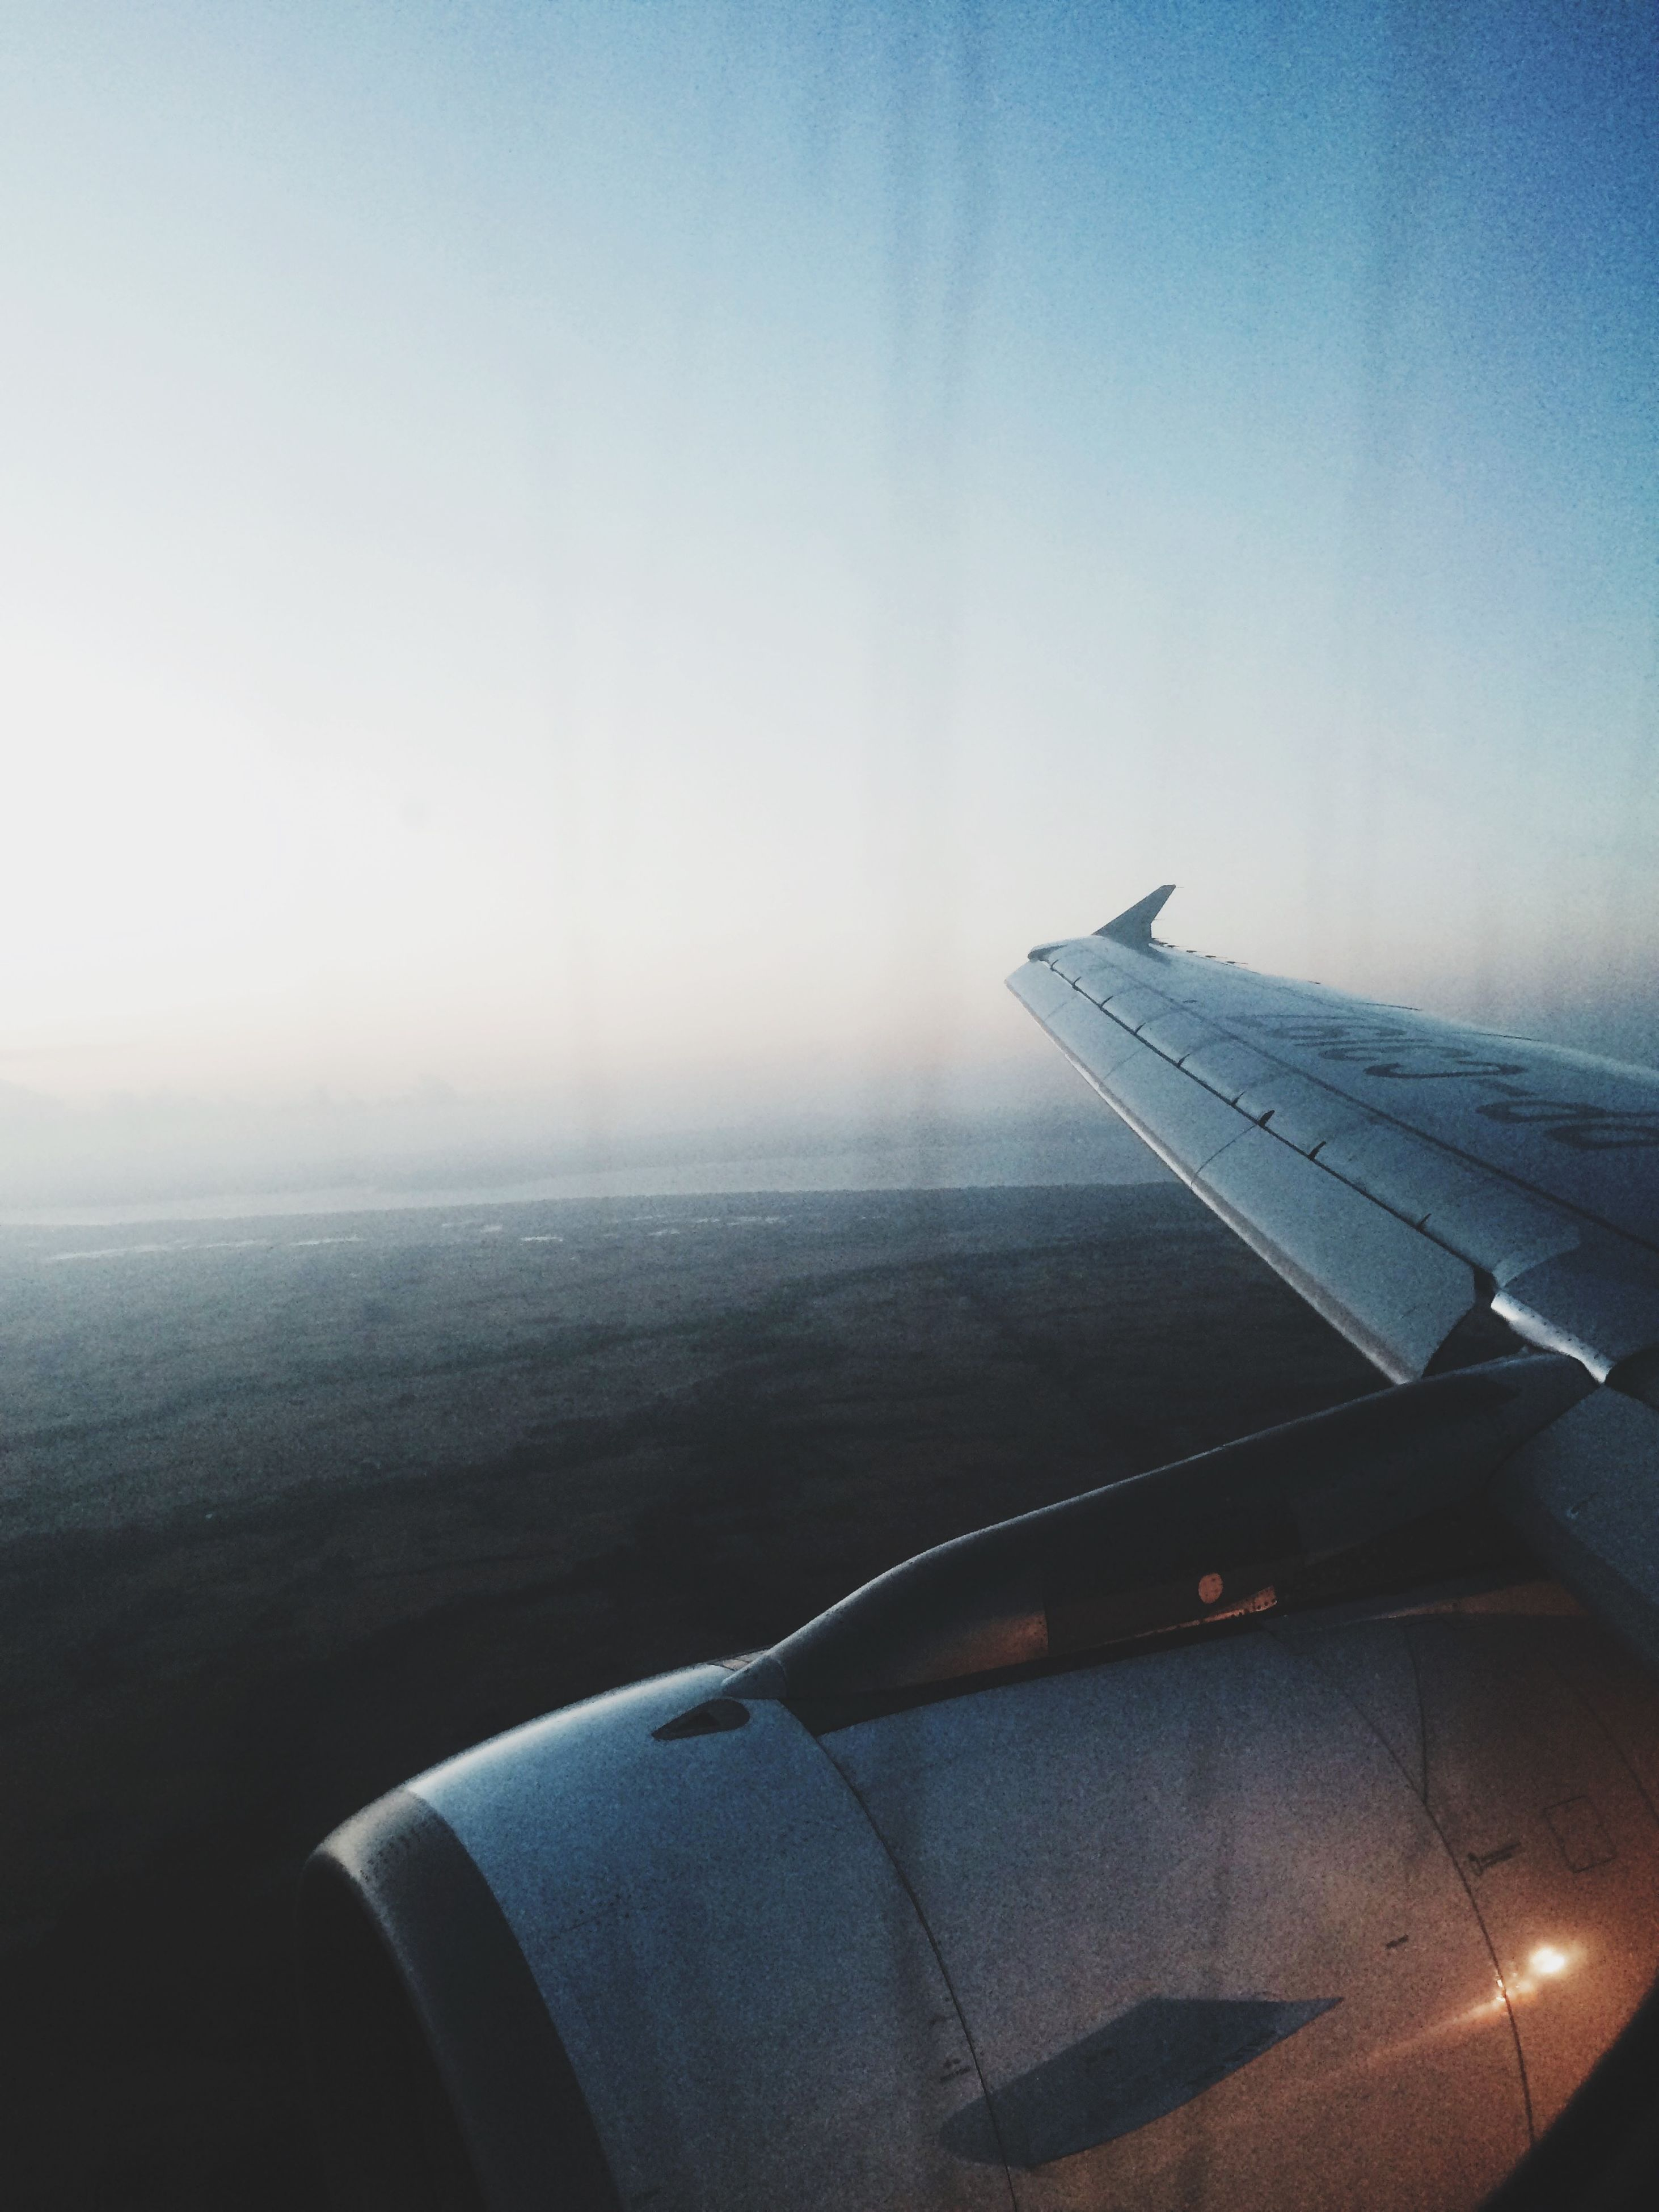 airplane, air vehicle, aircraft wing, transportation, mode of transport, flying, part of, cropped, aerial view, travel, sky, journey, mid-air, on the move, sea, aeroplane, scenics, airplane wing, public transportation, clear sky